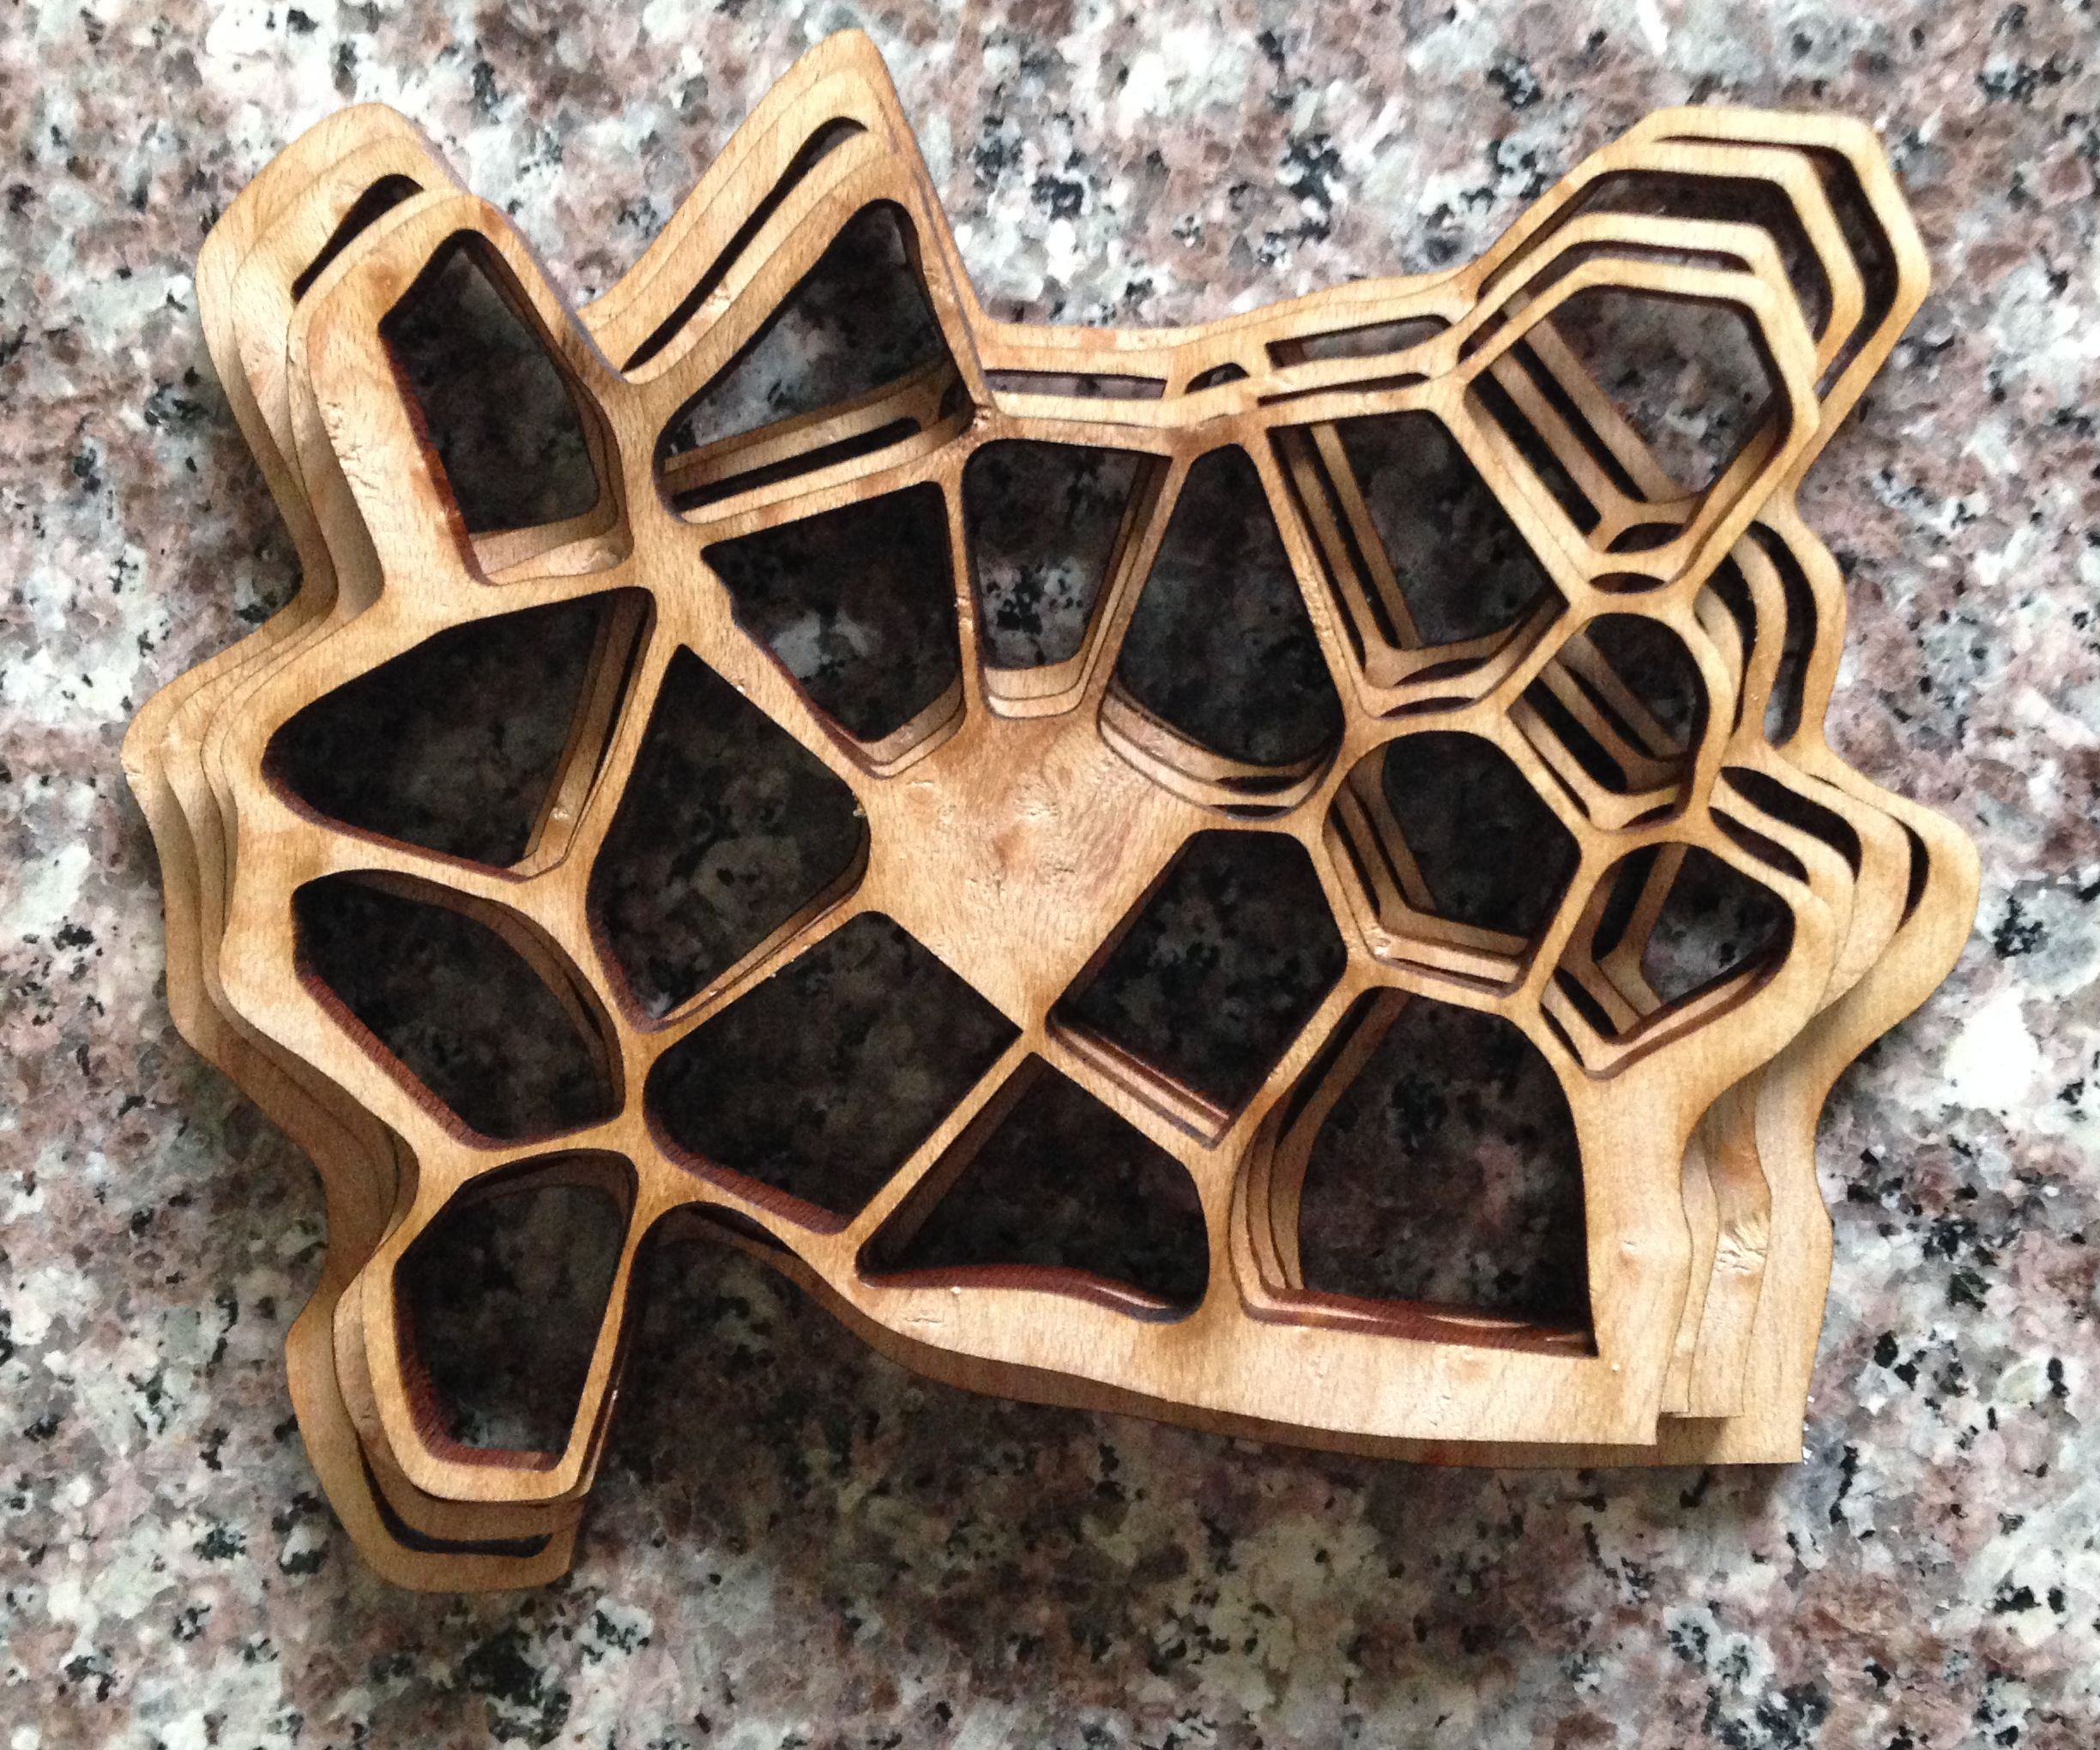 Cell-inspired wooden sculpture prototype